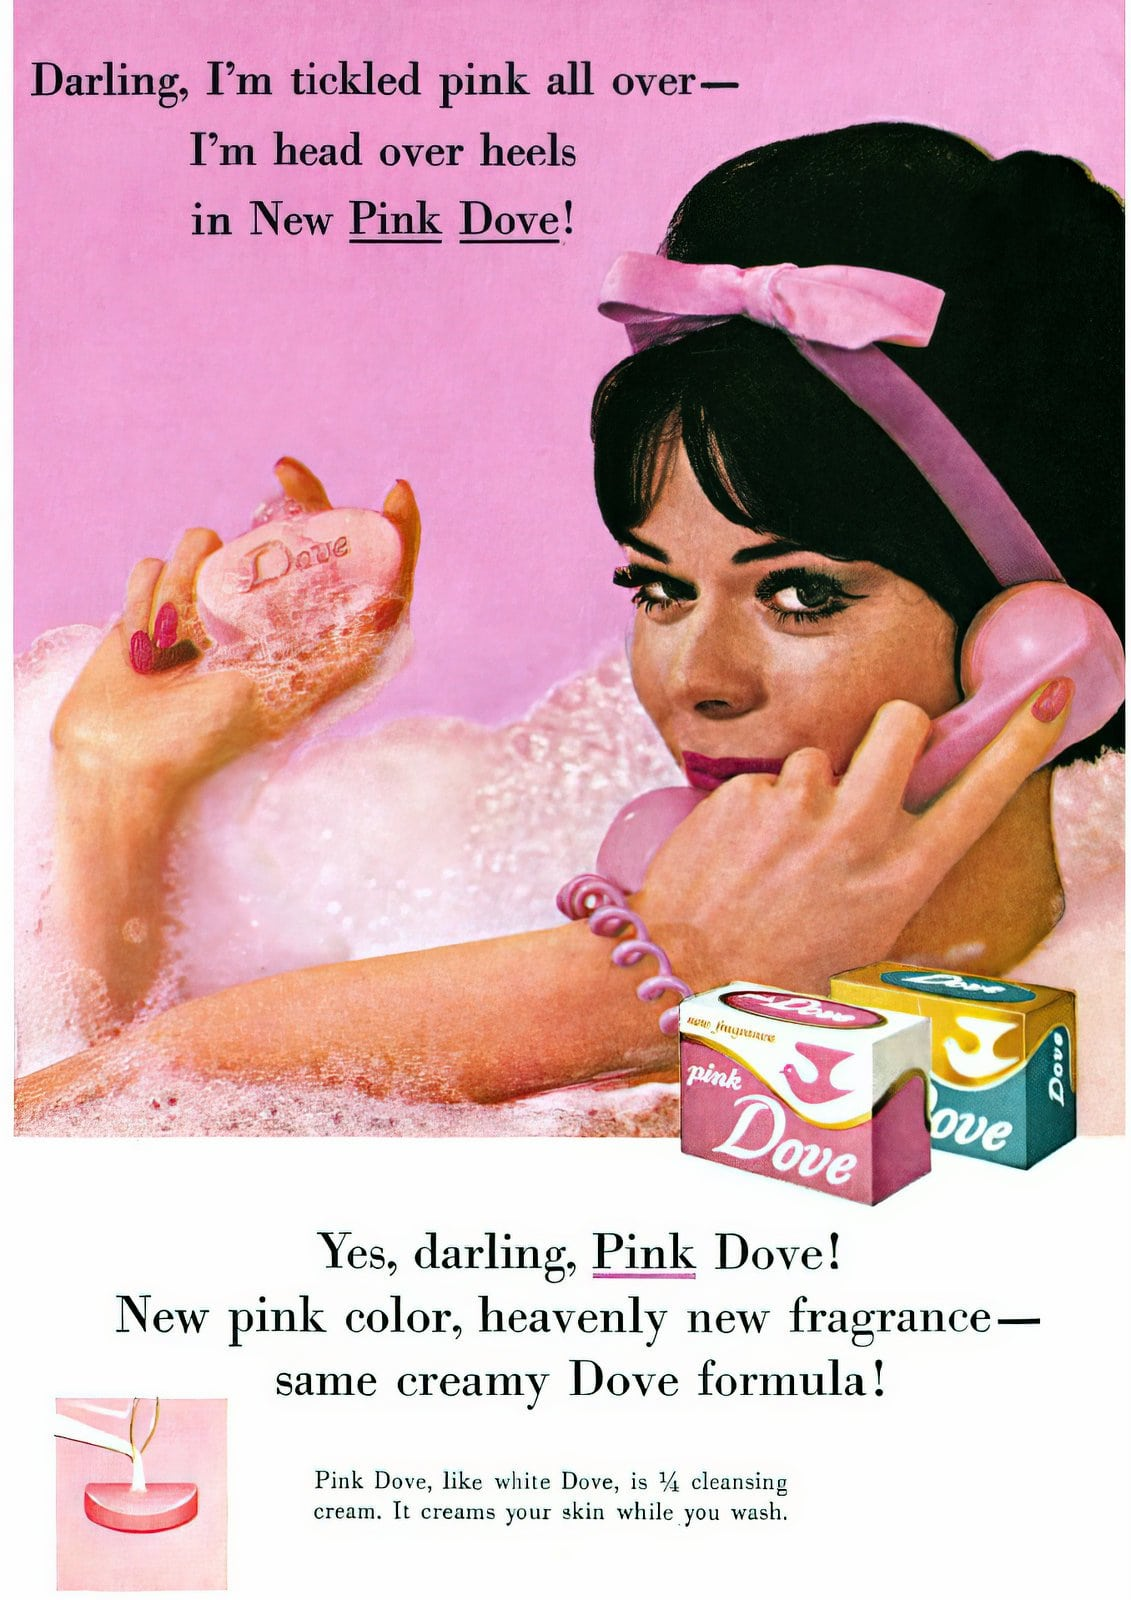 Pink Dove soap from the 1960s